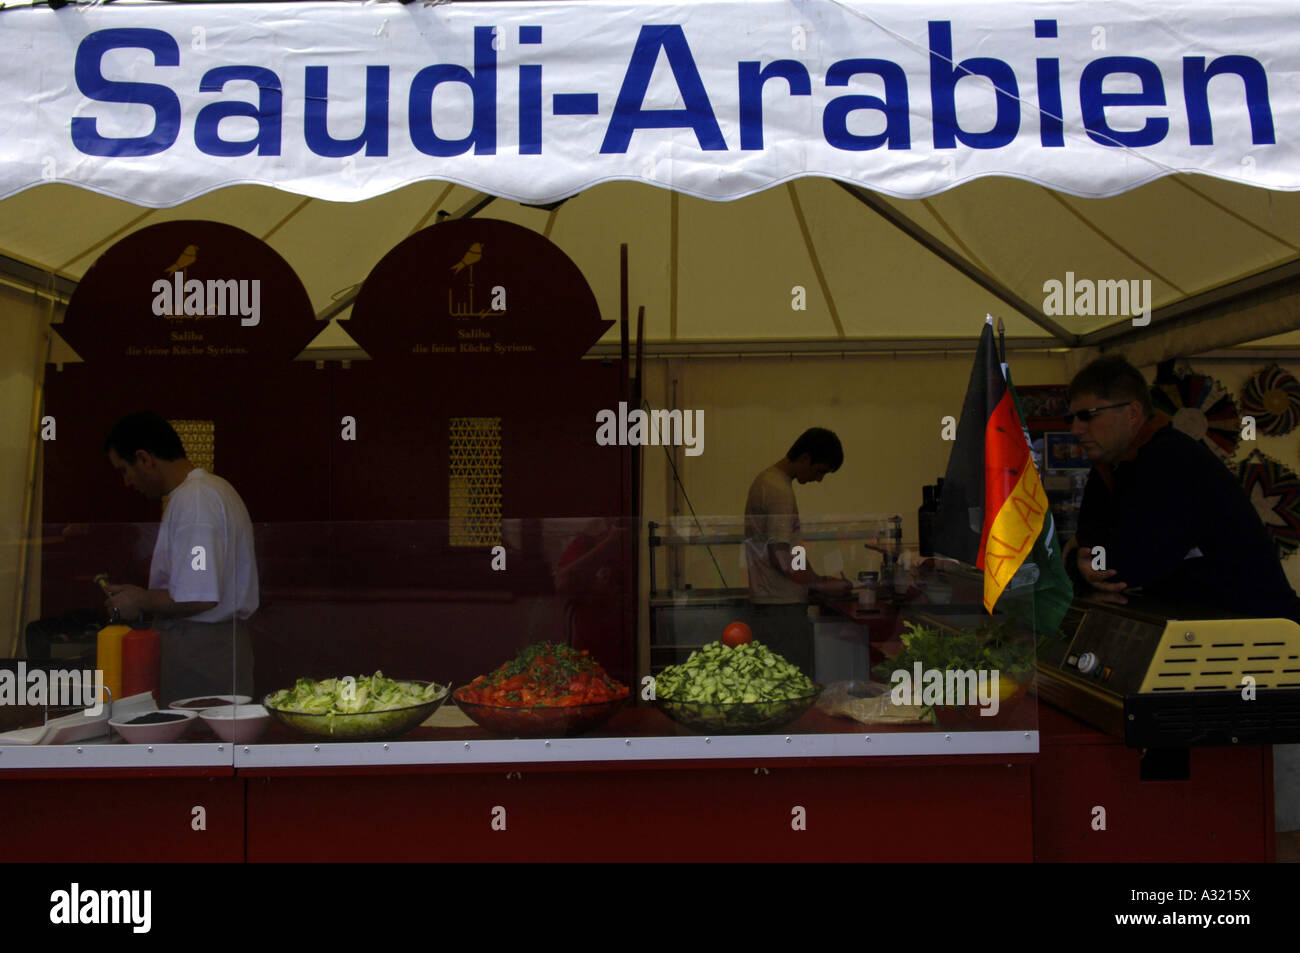 Saudi Arabian arabien saudita tenda cibo fanfest Amburgo Germania world cup 2006 soccer football cucina internazionale Immagini Stock